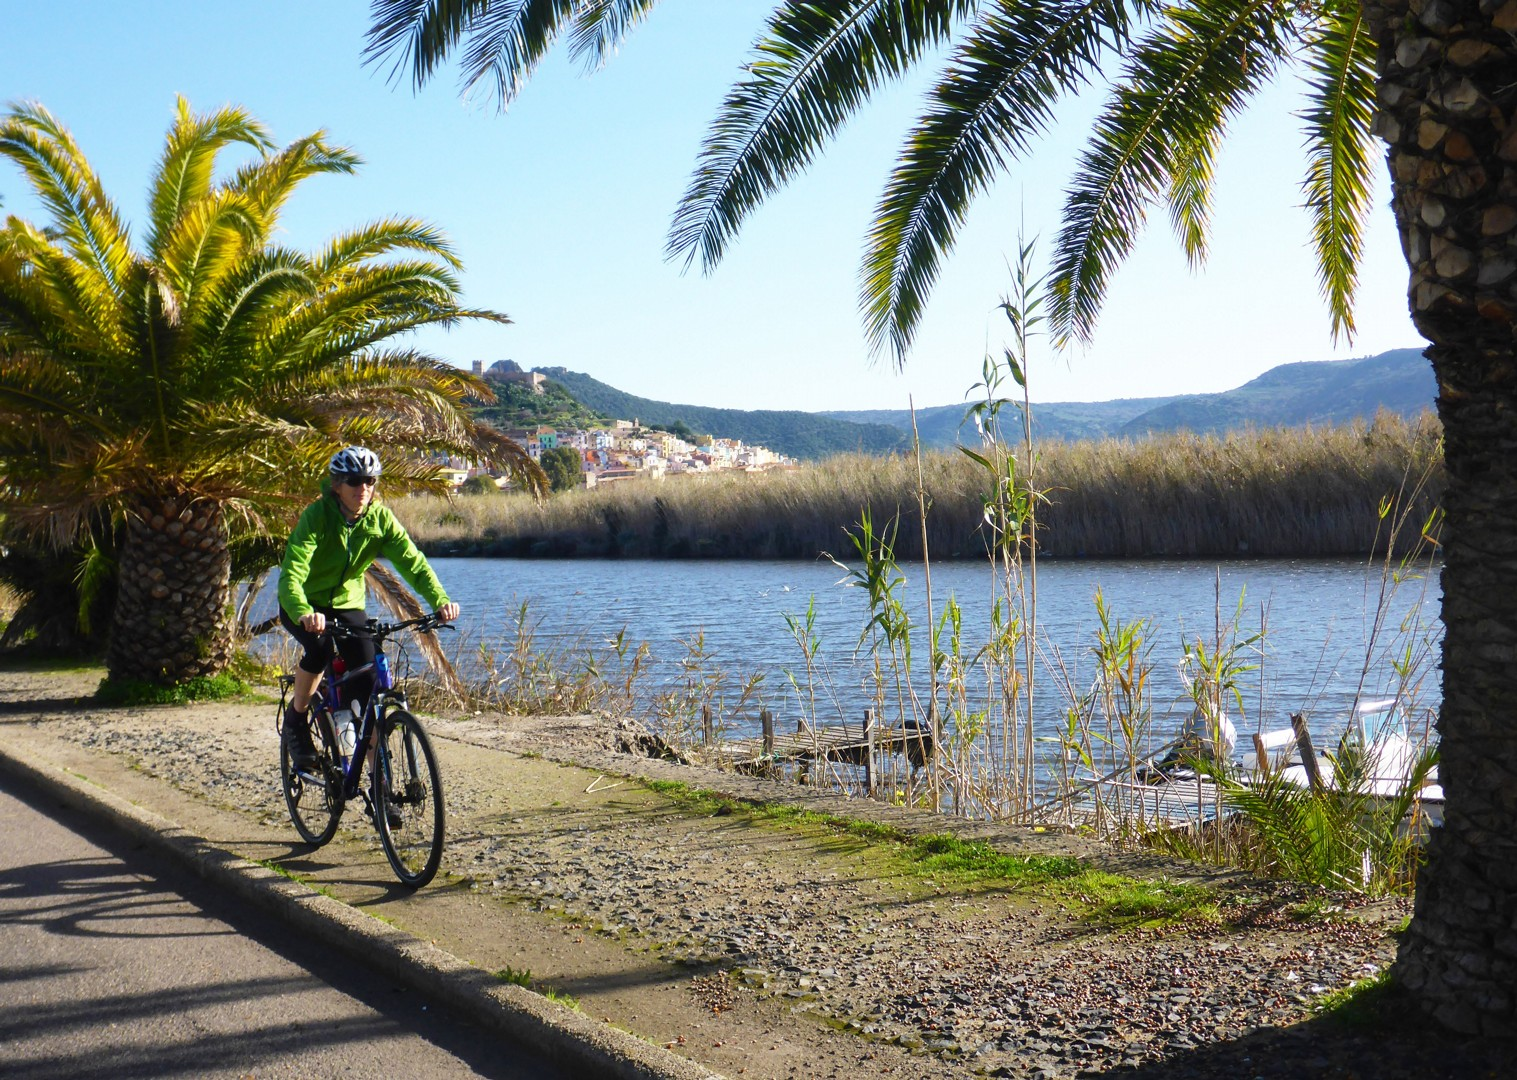 sardinia-leisure-cycling-holiday-saddle-skedaddle.jpg - Italy - Sardinia - West Coast Wonders - Self-Guided Leisure Cycling Holiday - Leisure Cycling